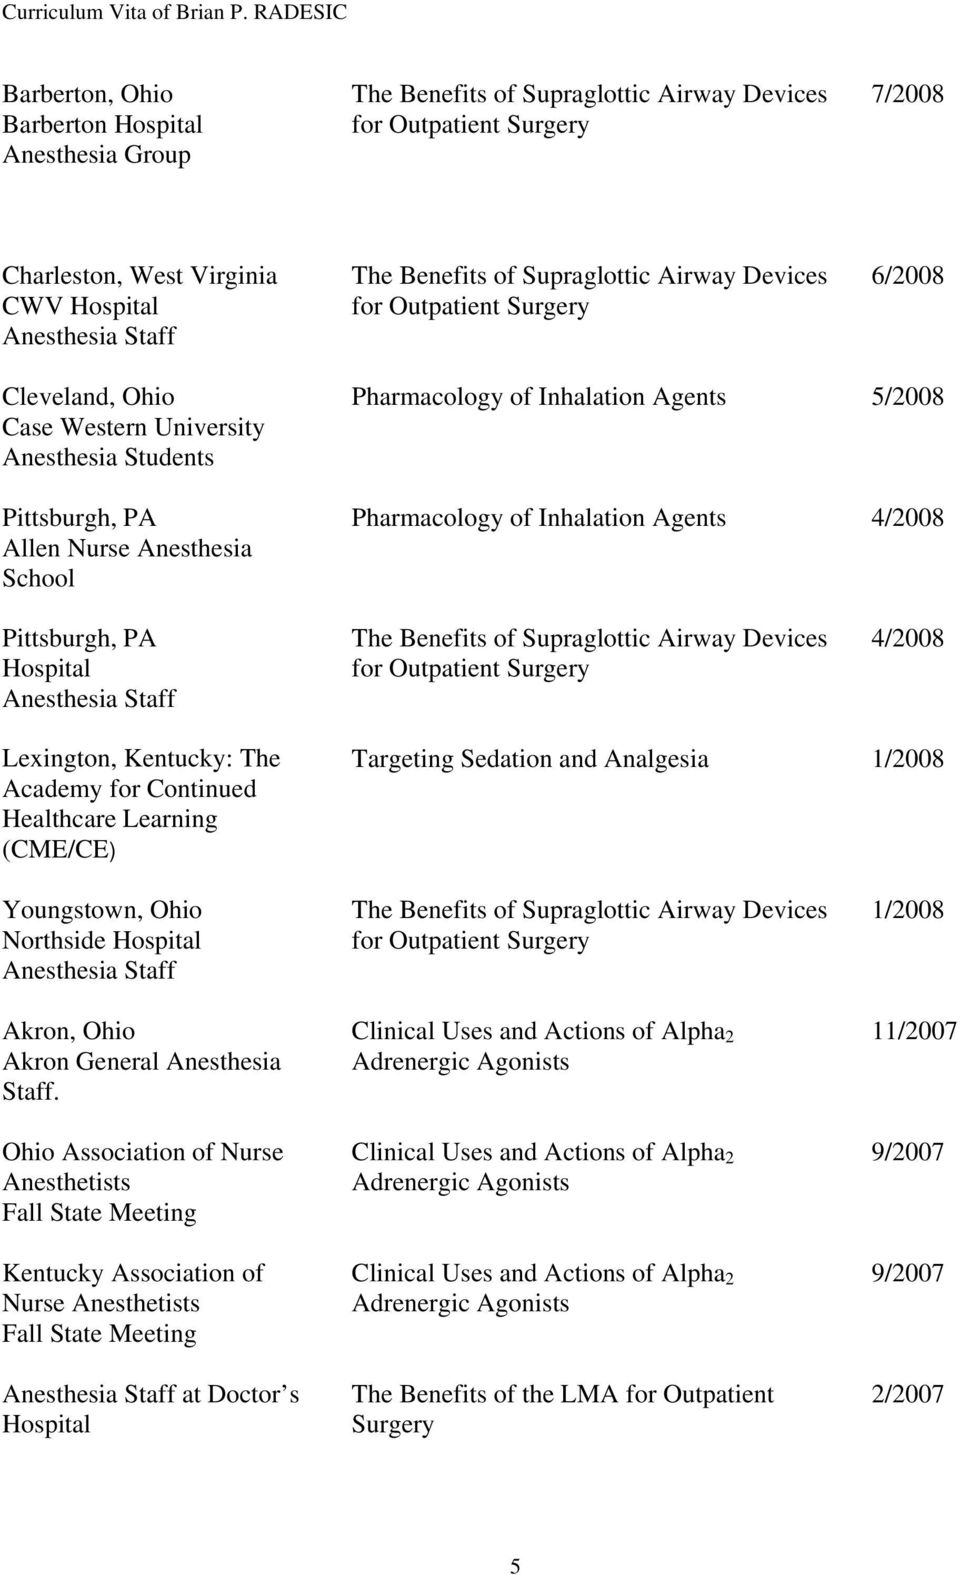 School Pharmacology of Inhalation Agents 4/2008 Pittsburgh, PA Hospital Anesthesia Staff The Benefits of Supraglottic Airway Devices for Outpatient Surgery 4/2008 Lexington, Kentucky: The Academy for